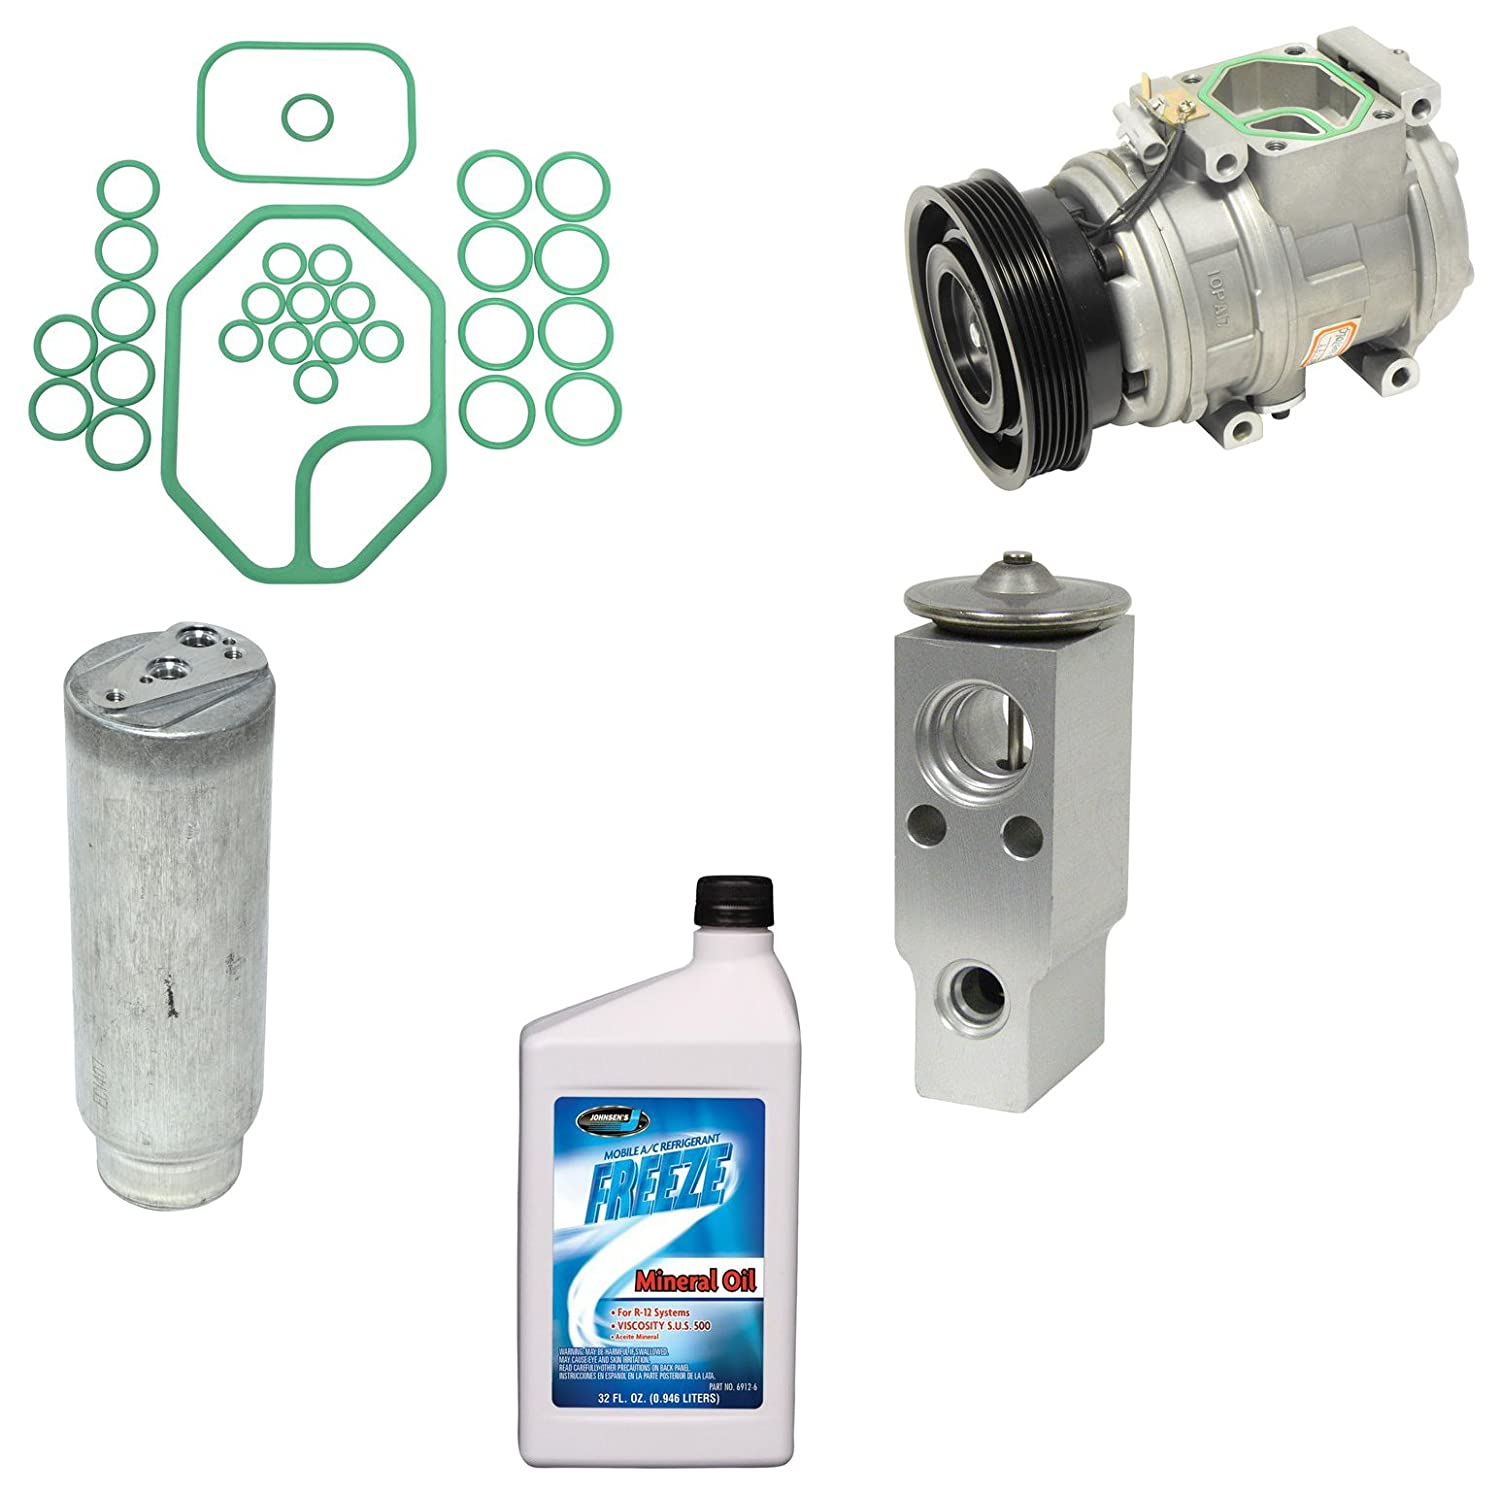 Amazon.com: Universal Air Conditioner KT 1865 A/C Compressor and Component Kit: Automotive